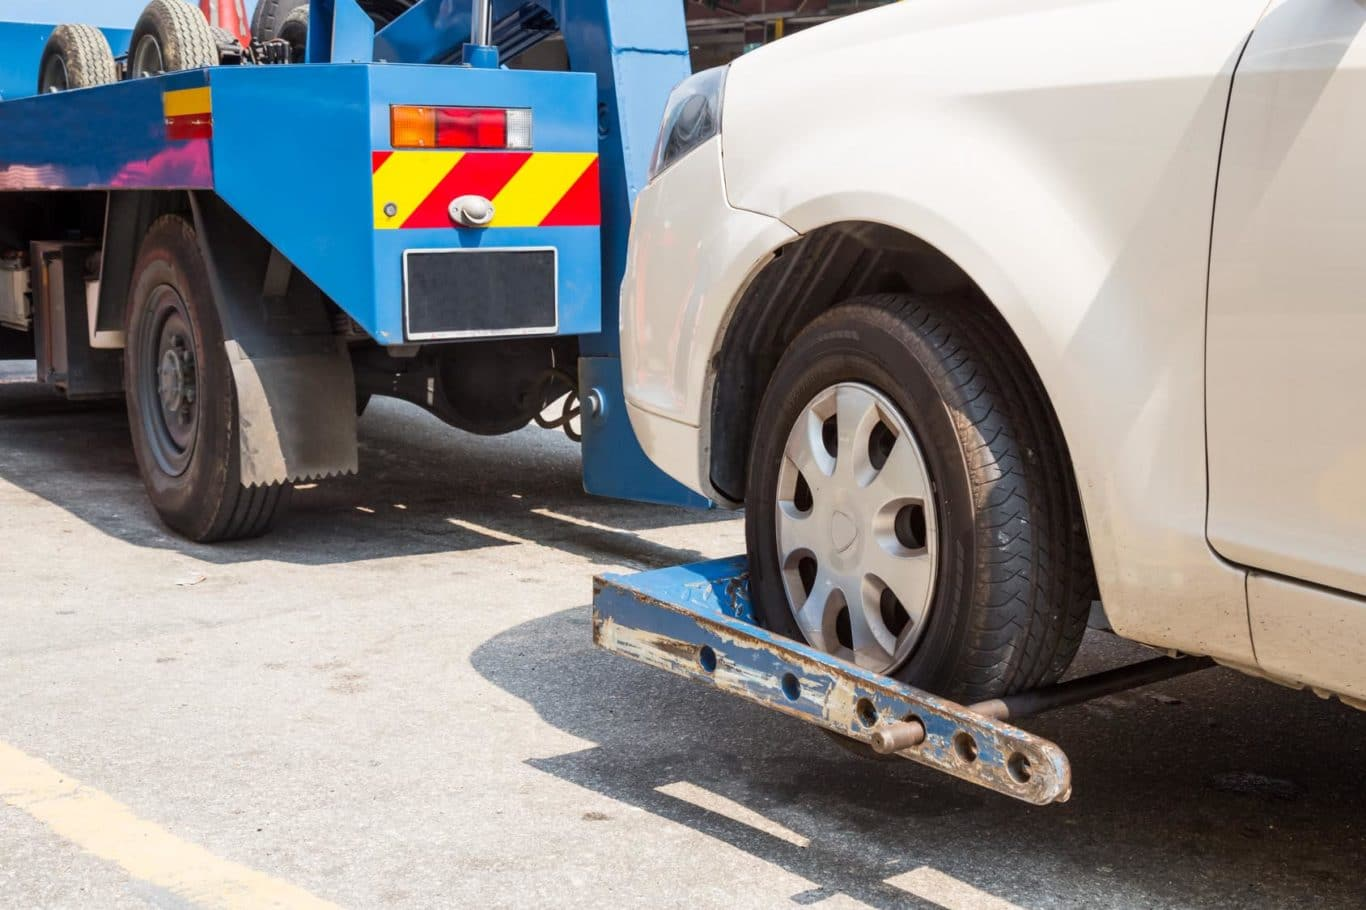 Bettystown expert Breakdown Assistance services